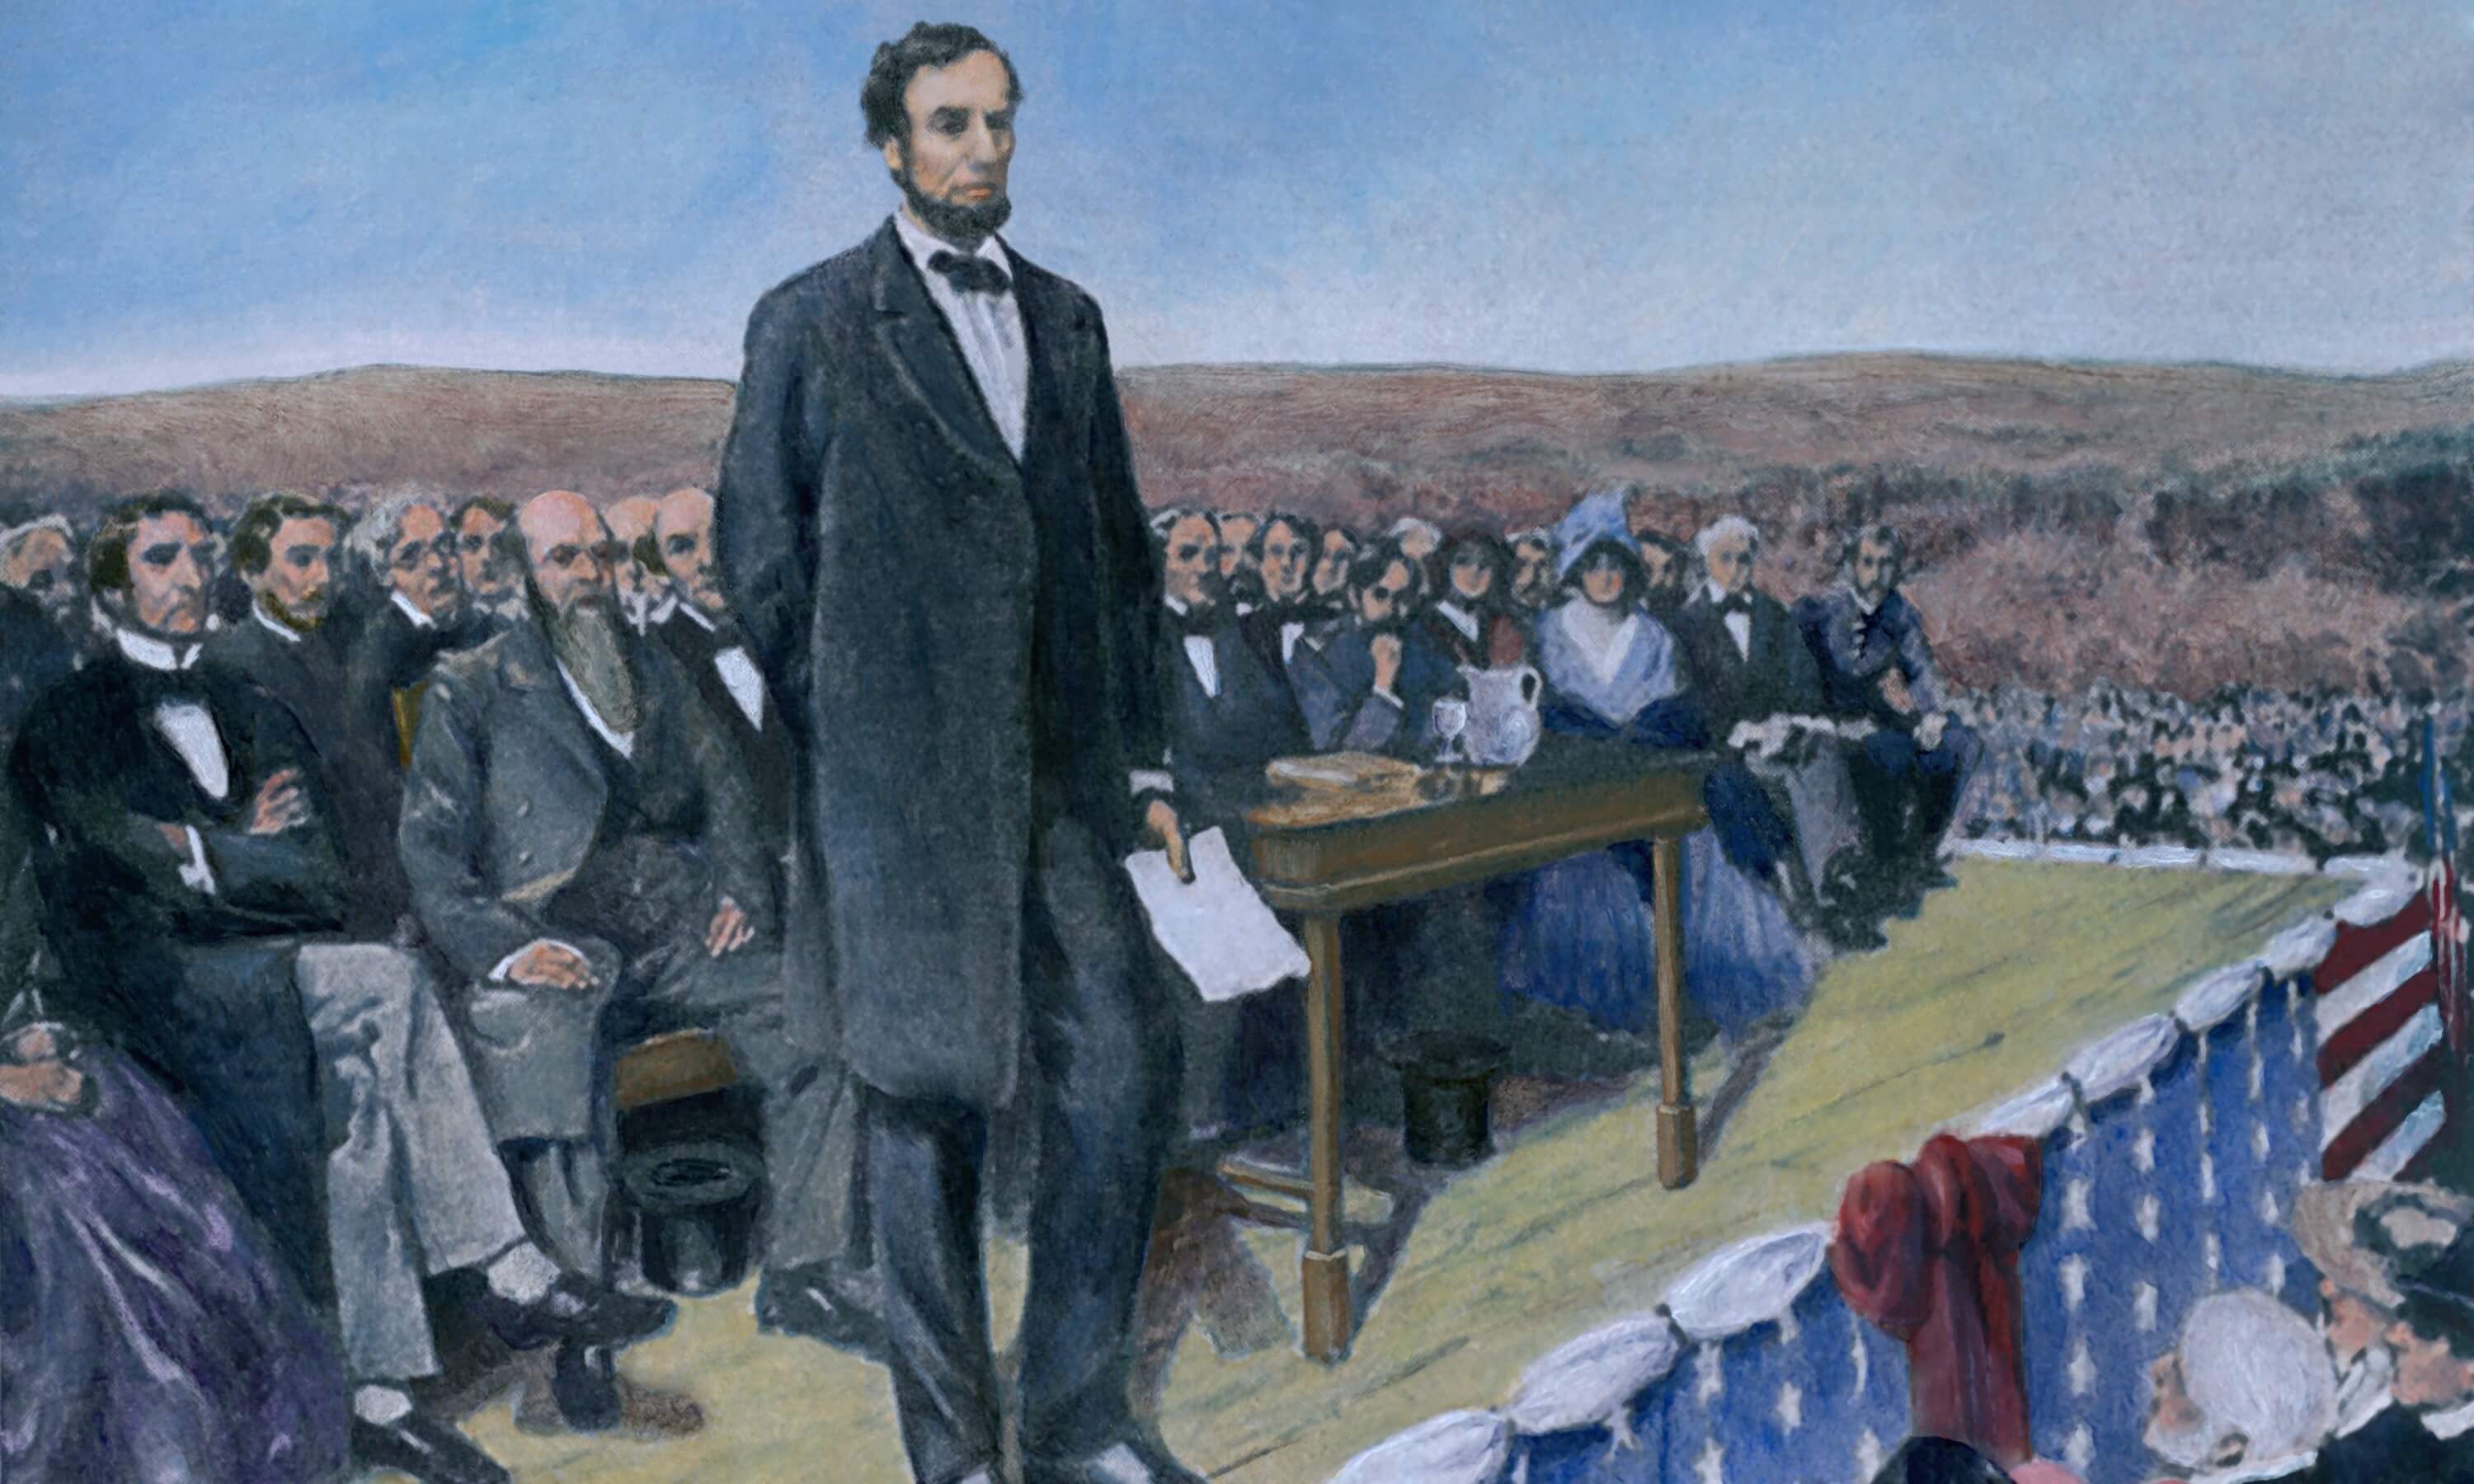 Abraham Lincoln (1809 -1865) delivering the Gettysburg Address during dedication ceremonies at the Soldiers' National Cemetery on November 19, 1863. 20th century print with modern color